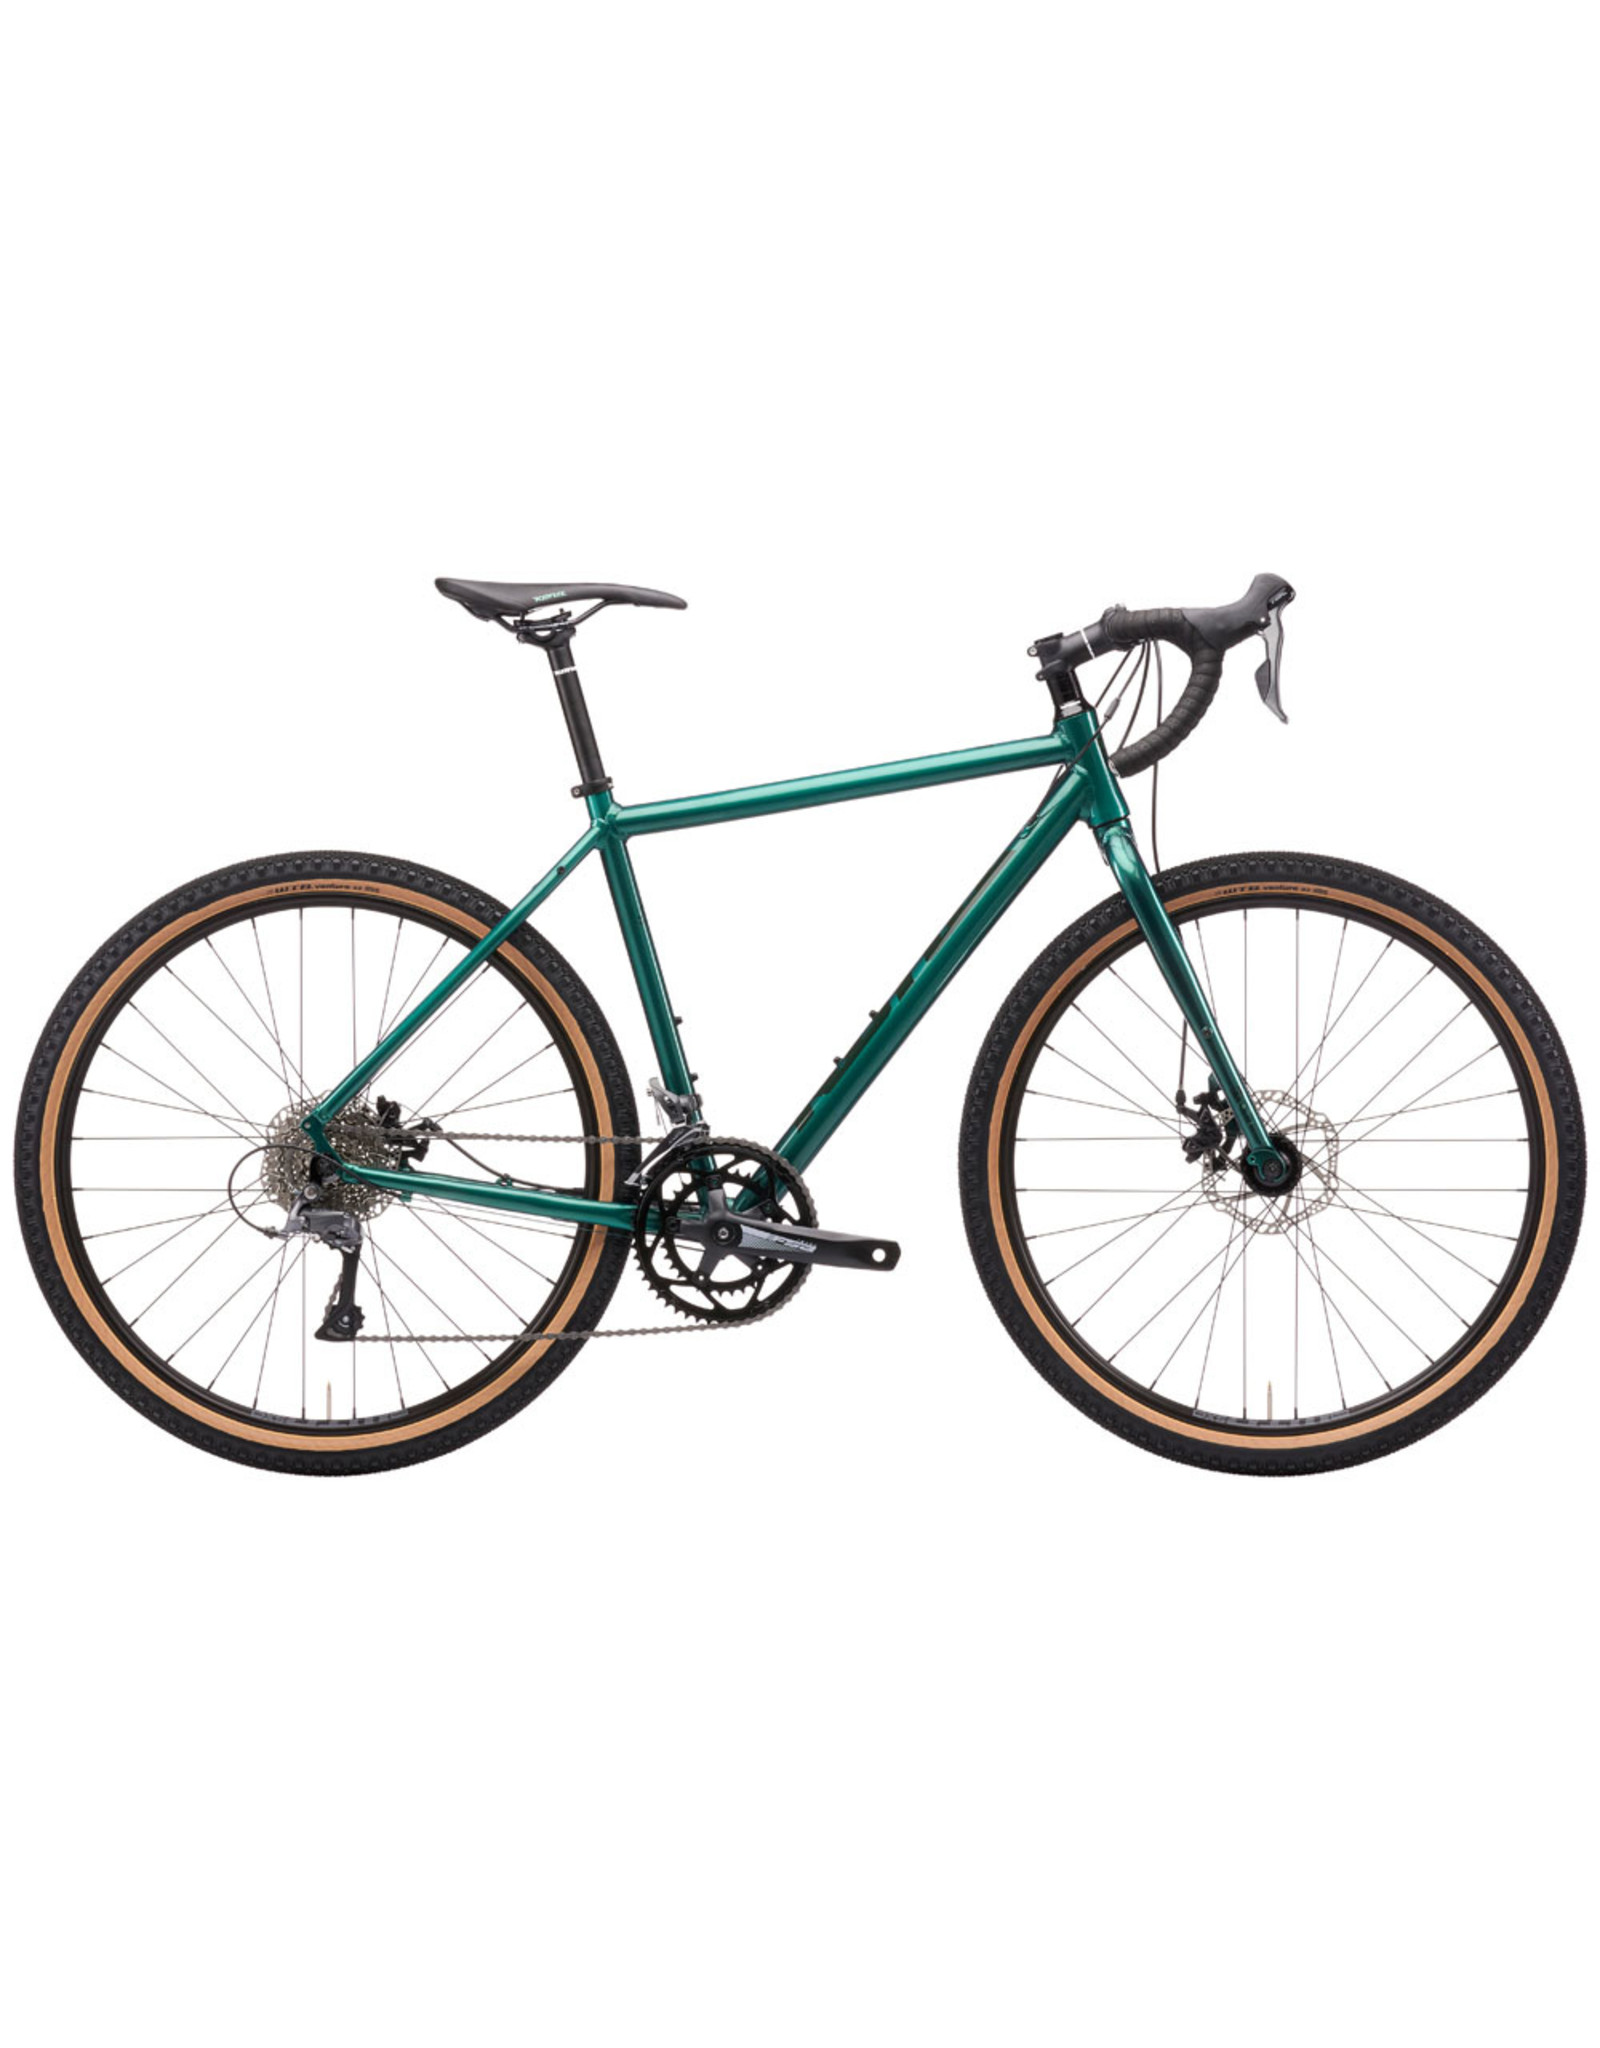 Rove AL 650 Gloss Metallic Canyon Green 54cm